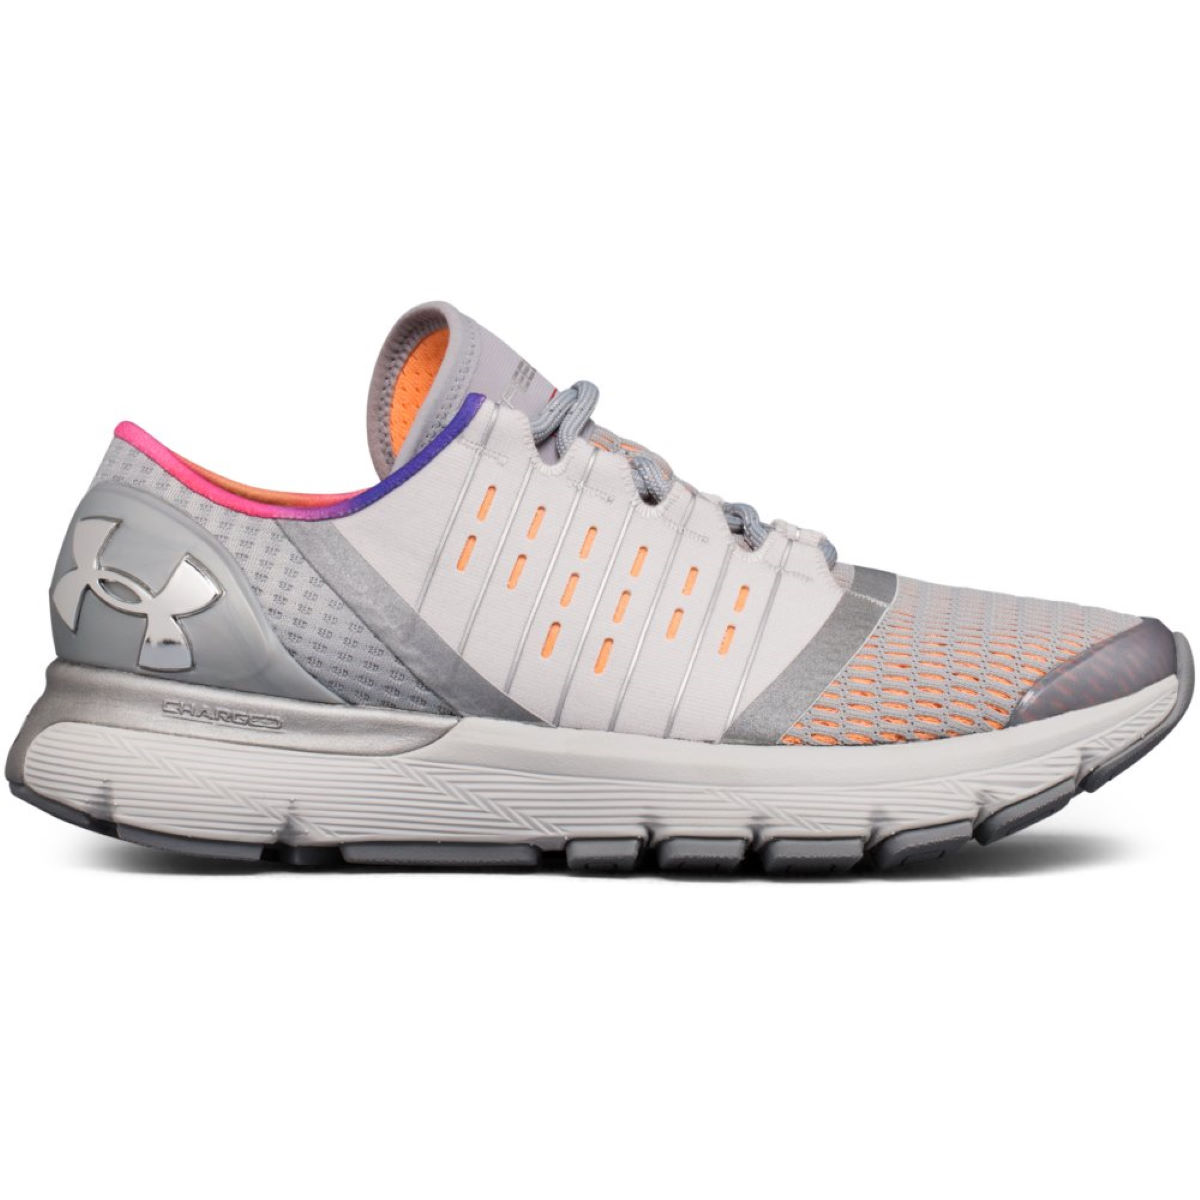 Under Armour Women´s Speedform Europa RE Run Shoes - Polstrede løbesko